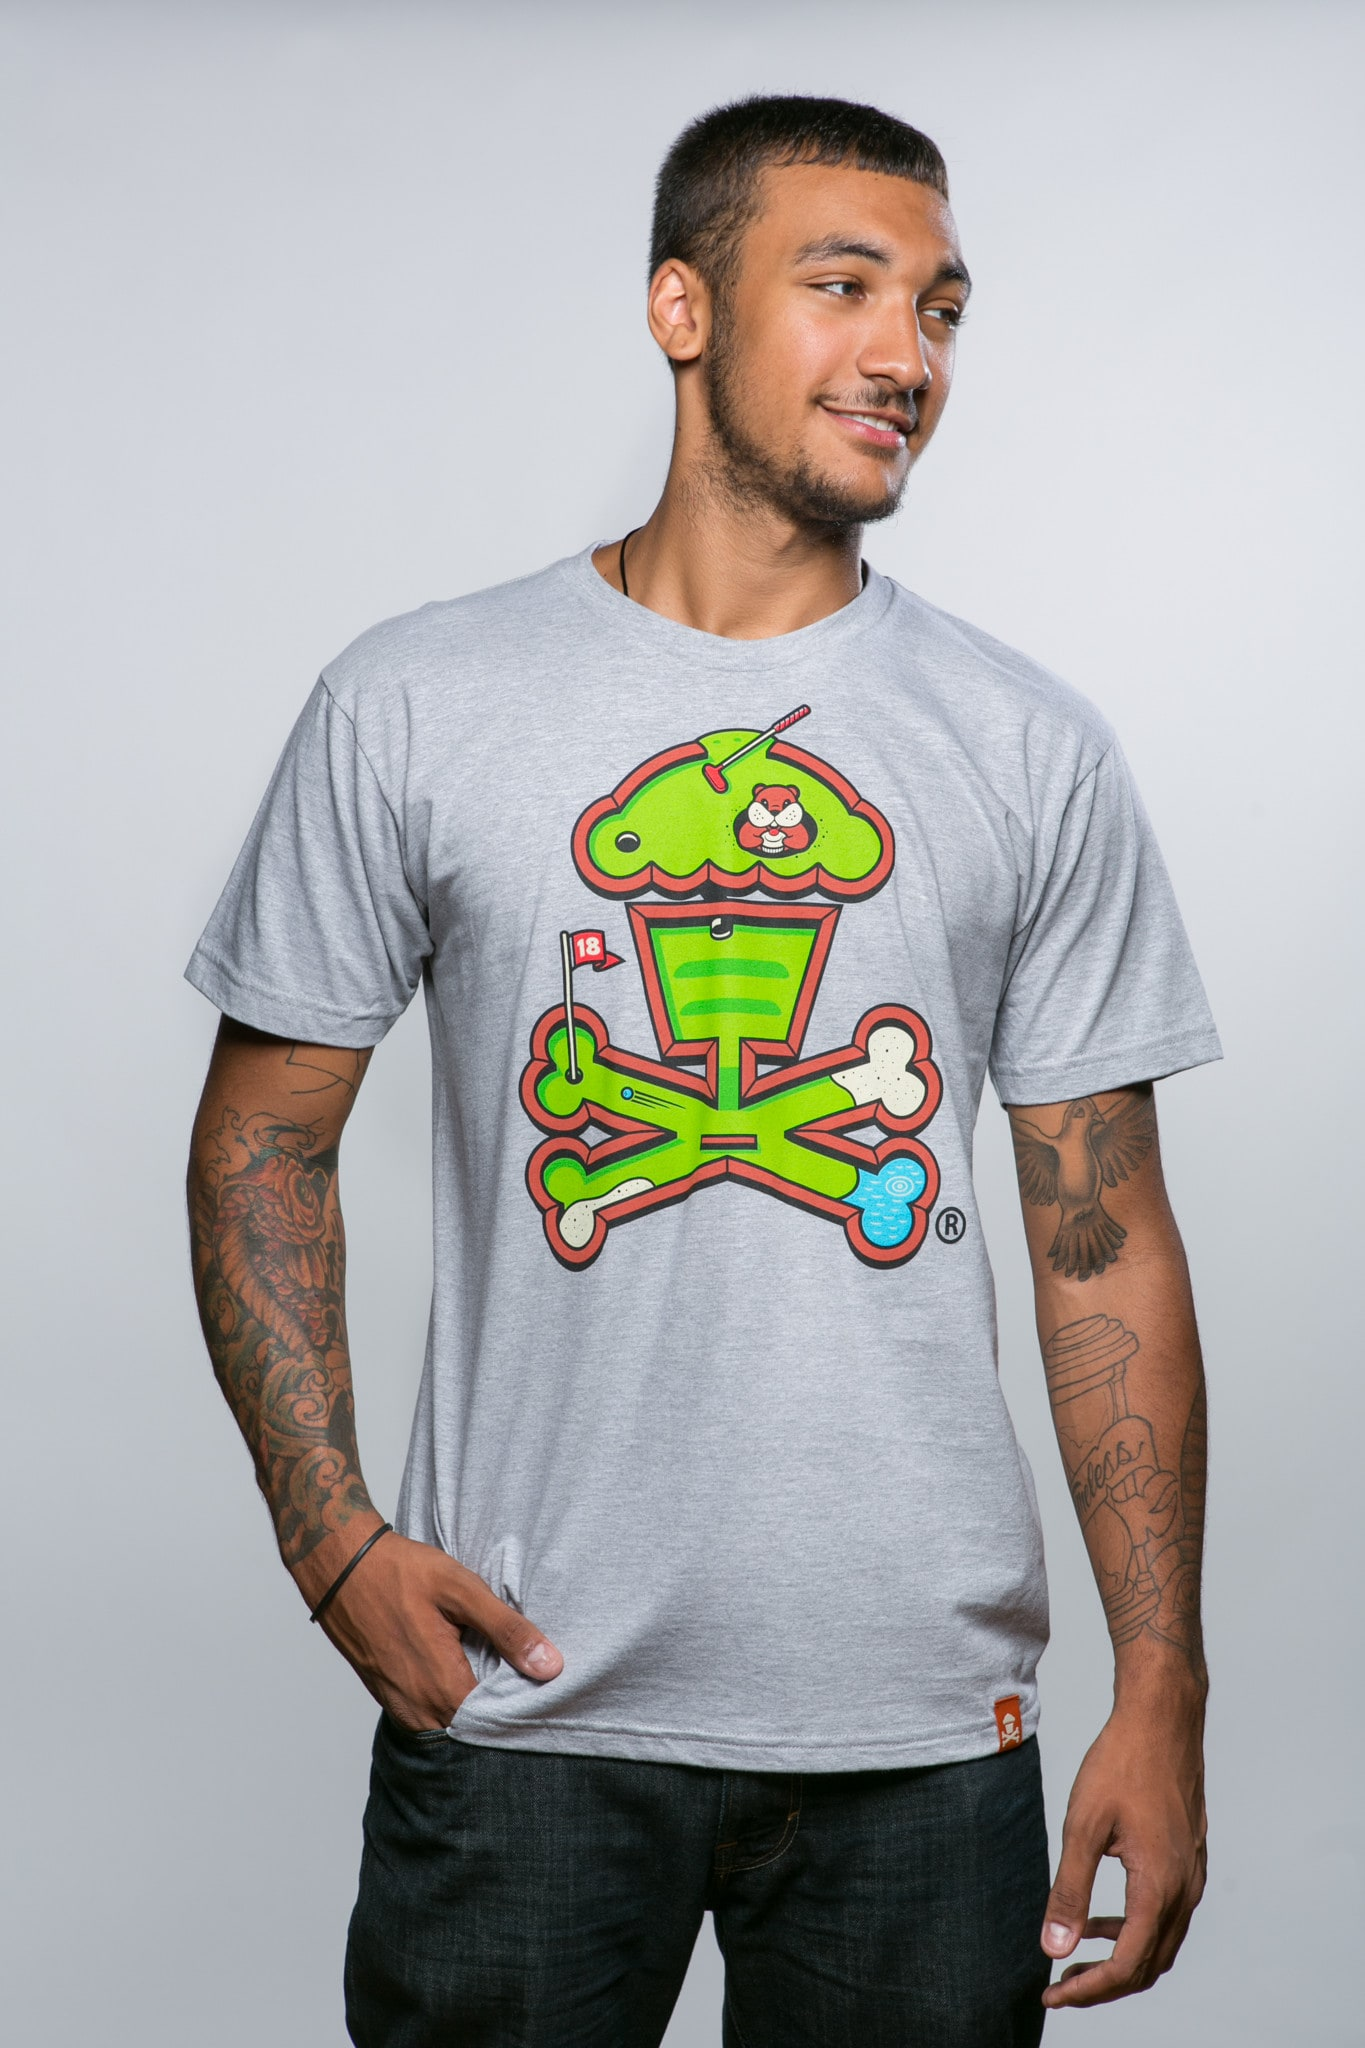 Four new designs from Johnny Cupcakes  Hide Your Arms